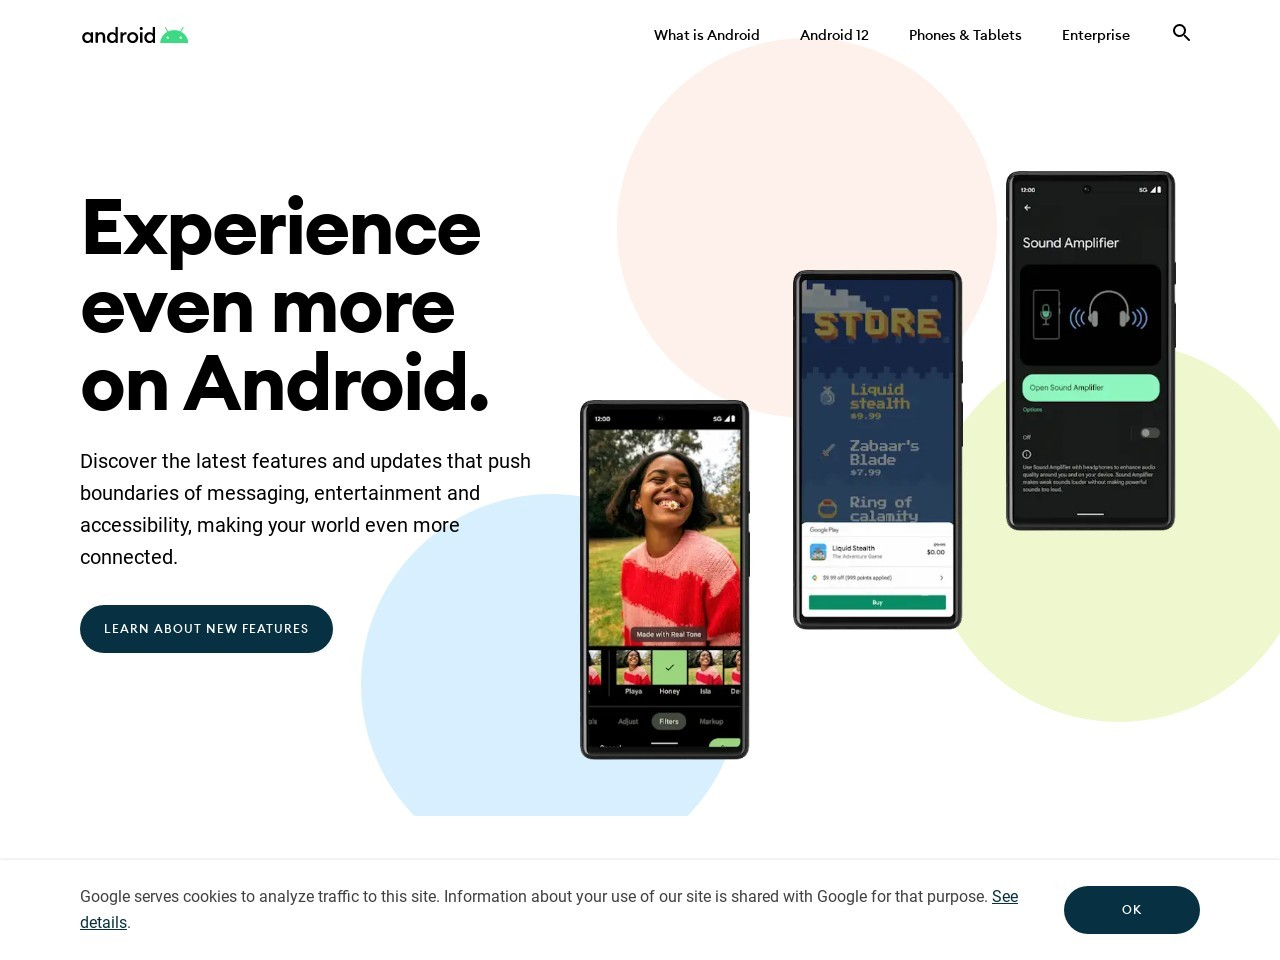 android.com